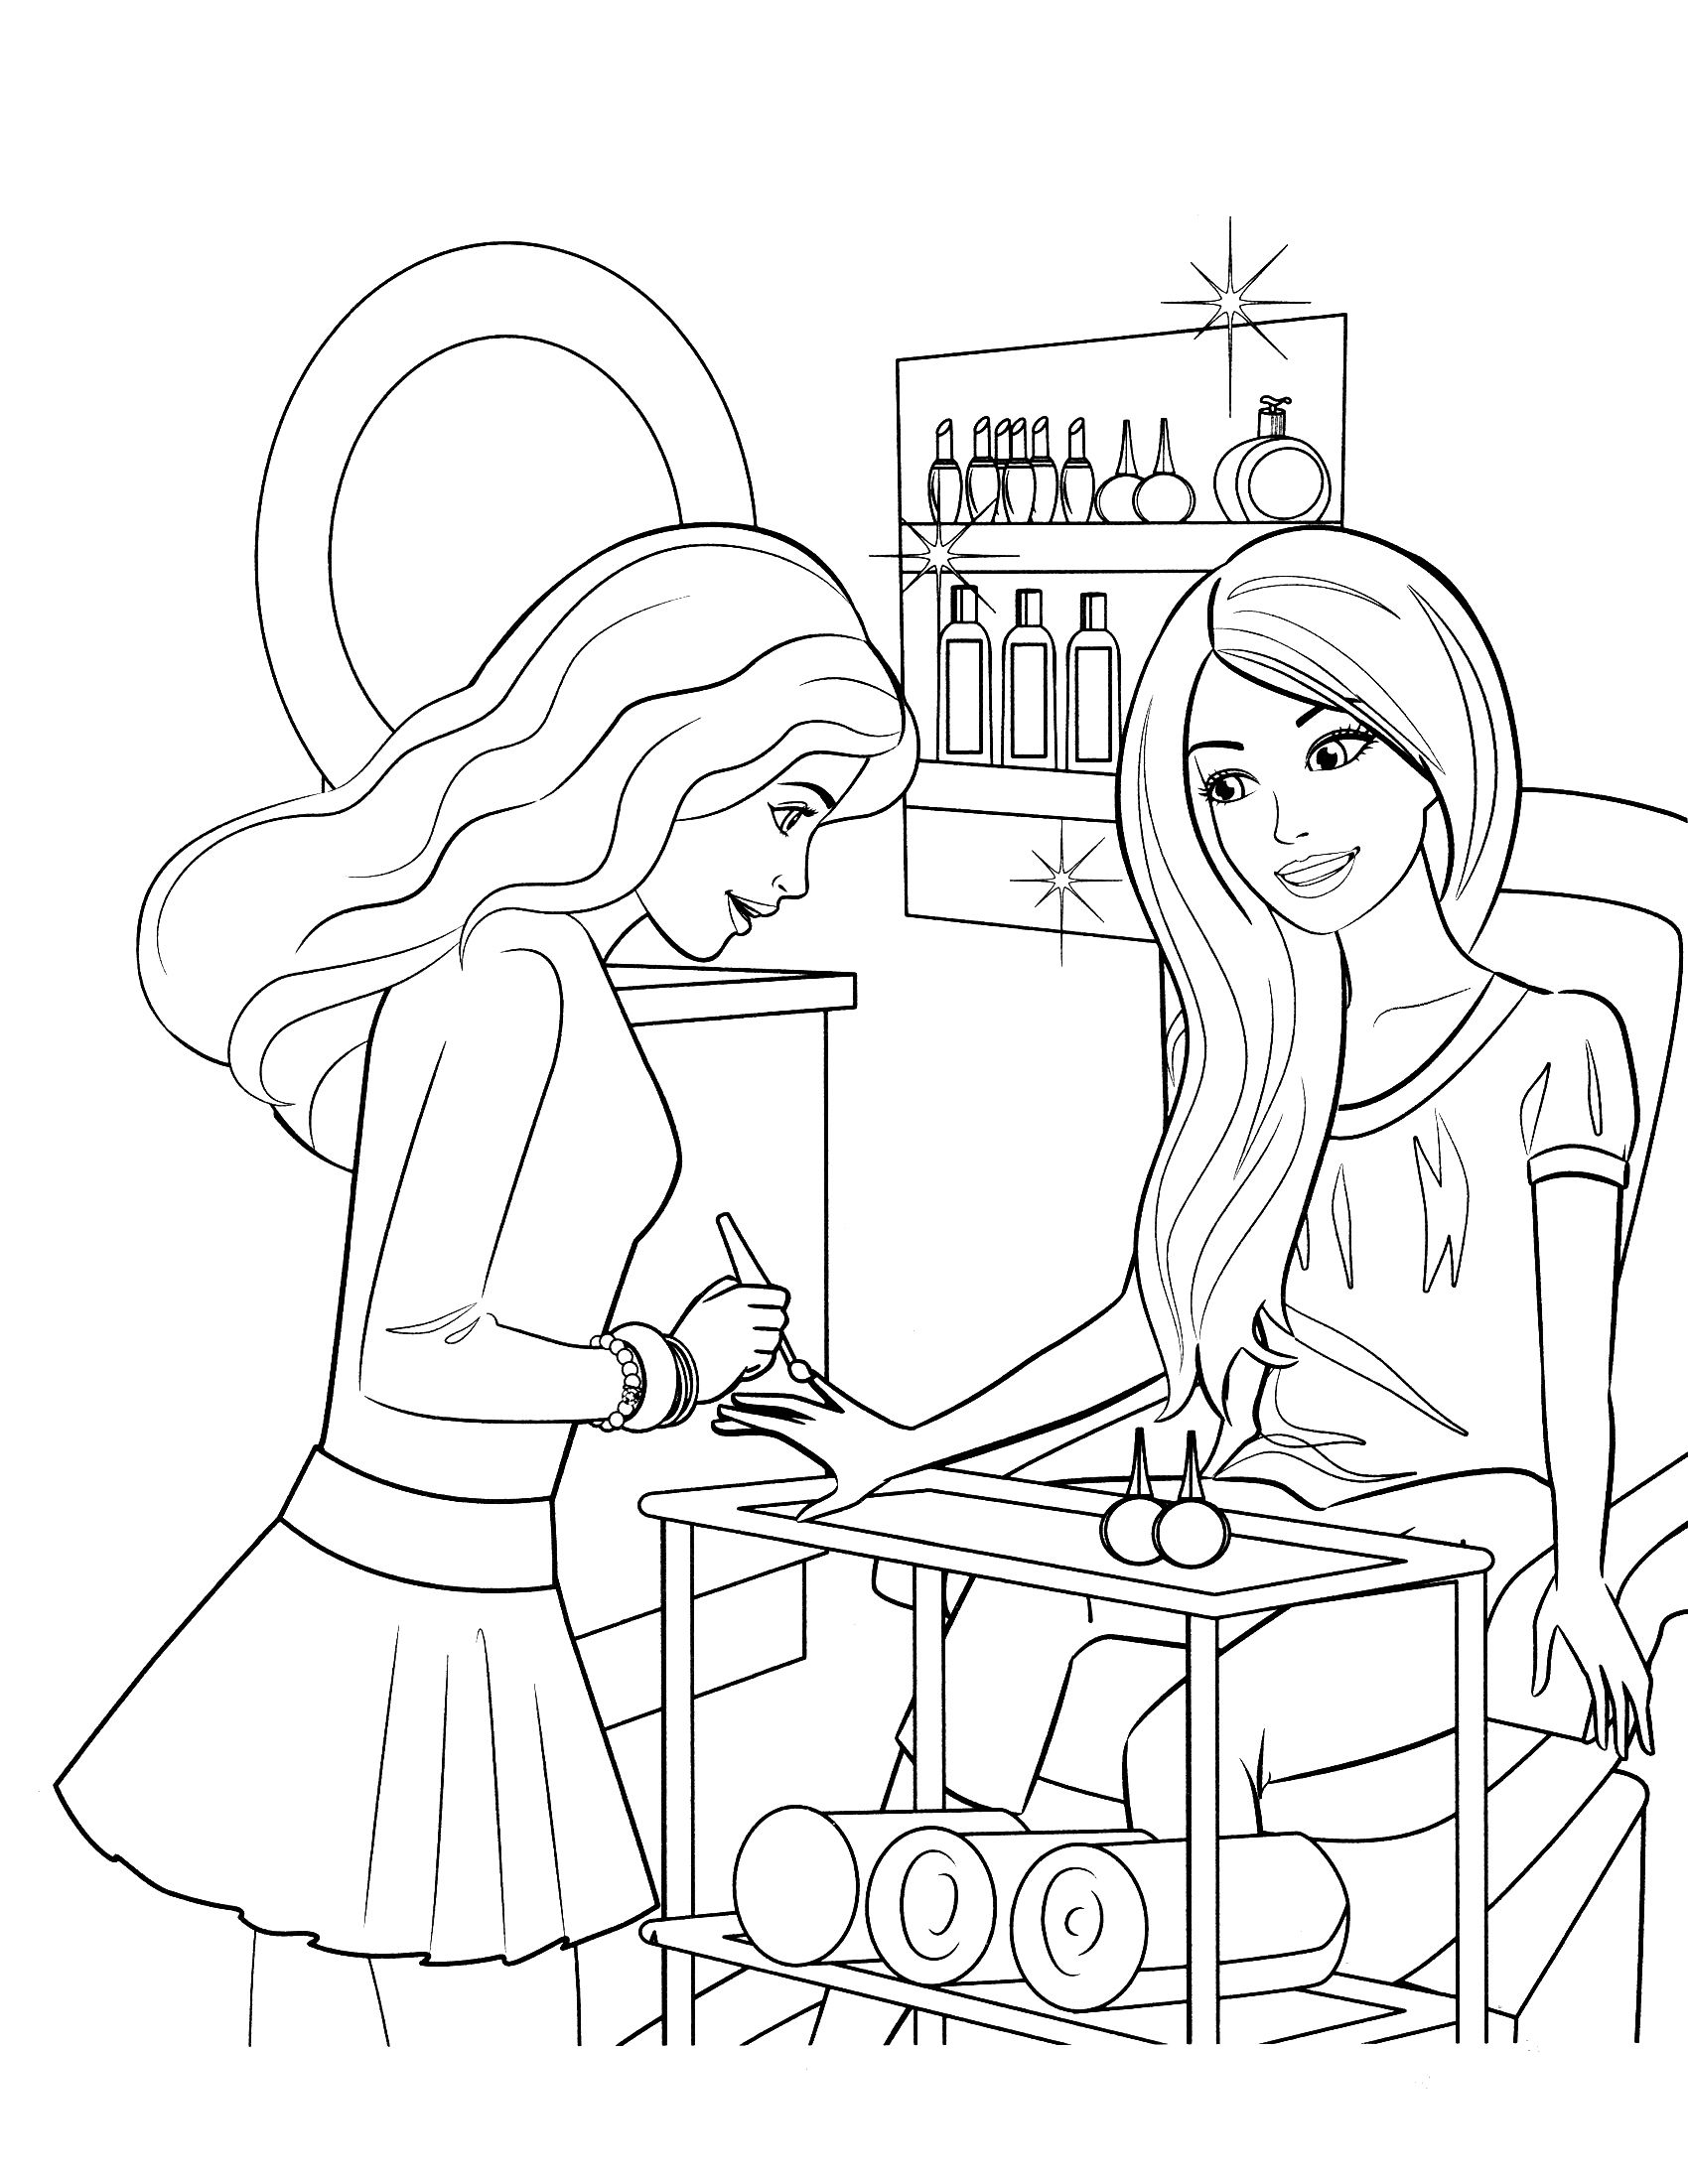 Free Printable Barbie Coloring Pages For Kids Barbie